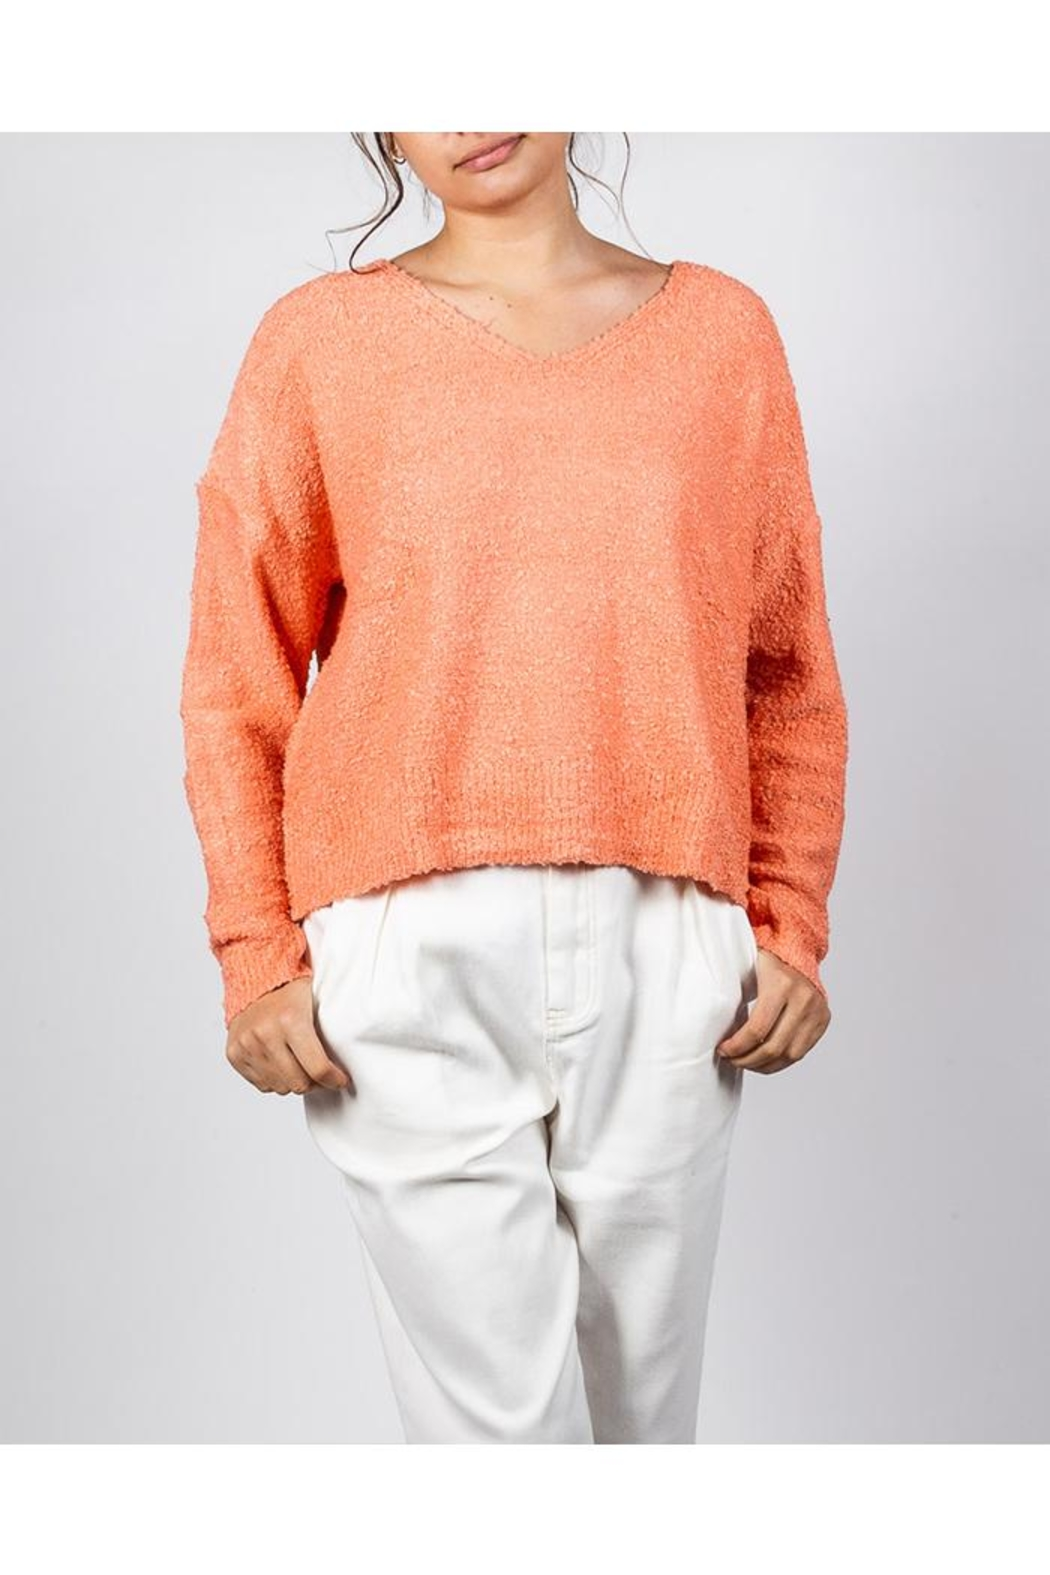 Le Lis Bright Spring Sweater - Main Image